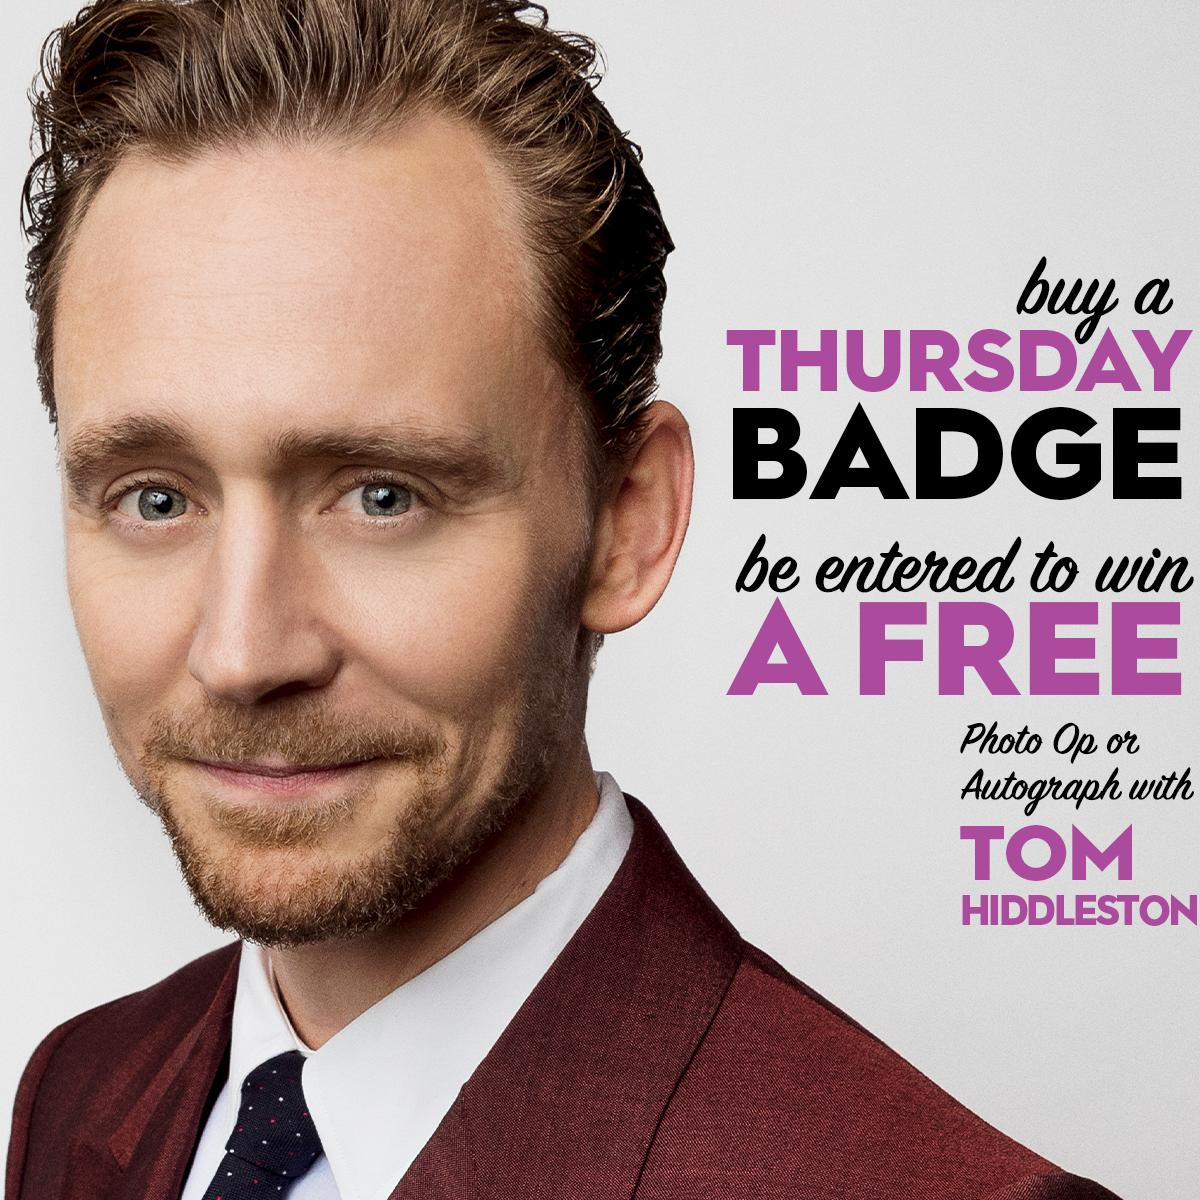 Buy a Thursday badge to NYCC 2019 before Mon, Sept 30 and be entered in to win a FREE Photo Op or Autograph with either Tom Hiddleston or Paul Rudd- your choice! Buy now:  http:// NYCC19.com/BuyBadges     <br>http://pic.twitter.com/Hbw3crXutN